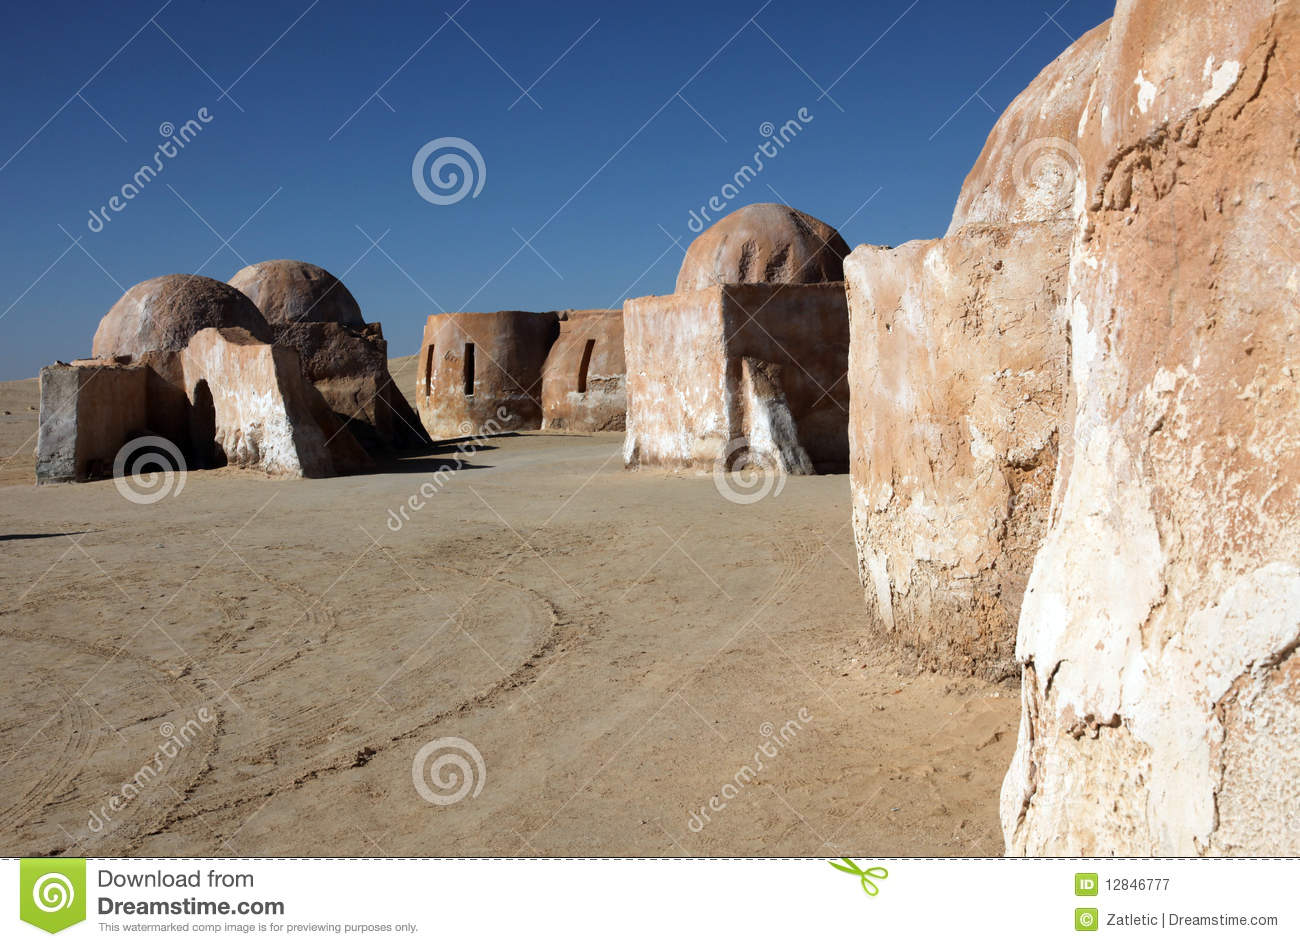 Star Wars Village Royalty Free Stock Photography